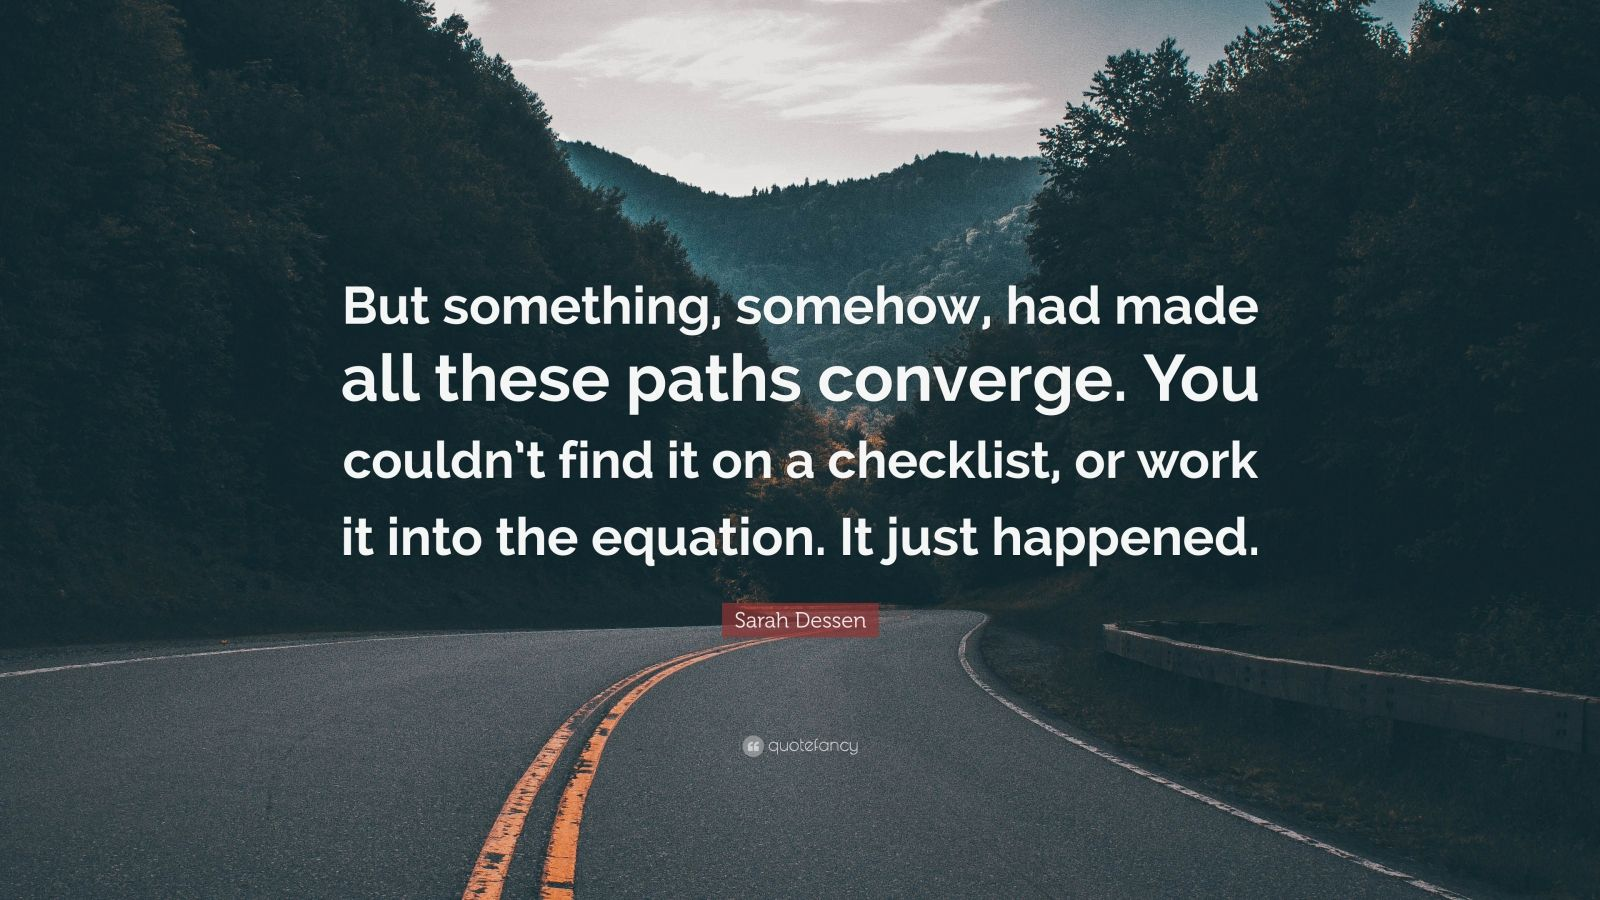 """Sarah Dessen Quote: """"But something, somehow, had made all these paths converge. You couldn't find it on a checklist, or work it into the equation. It just happened."""""""